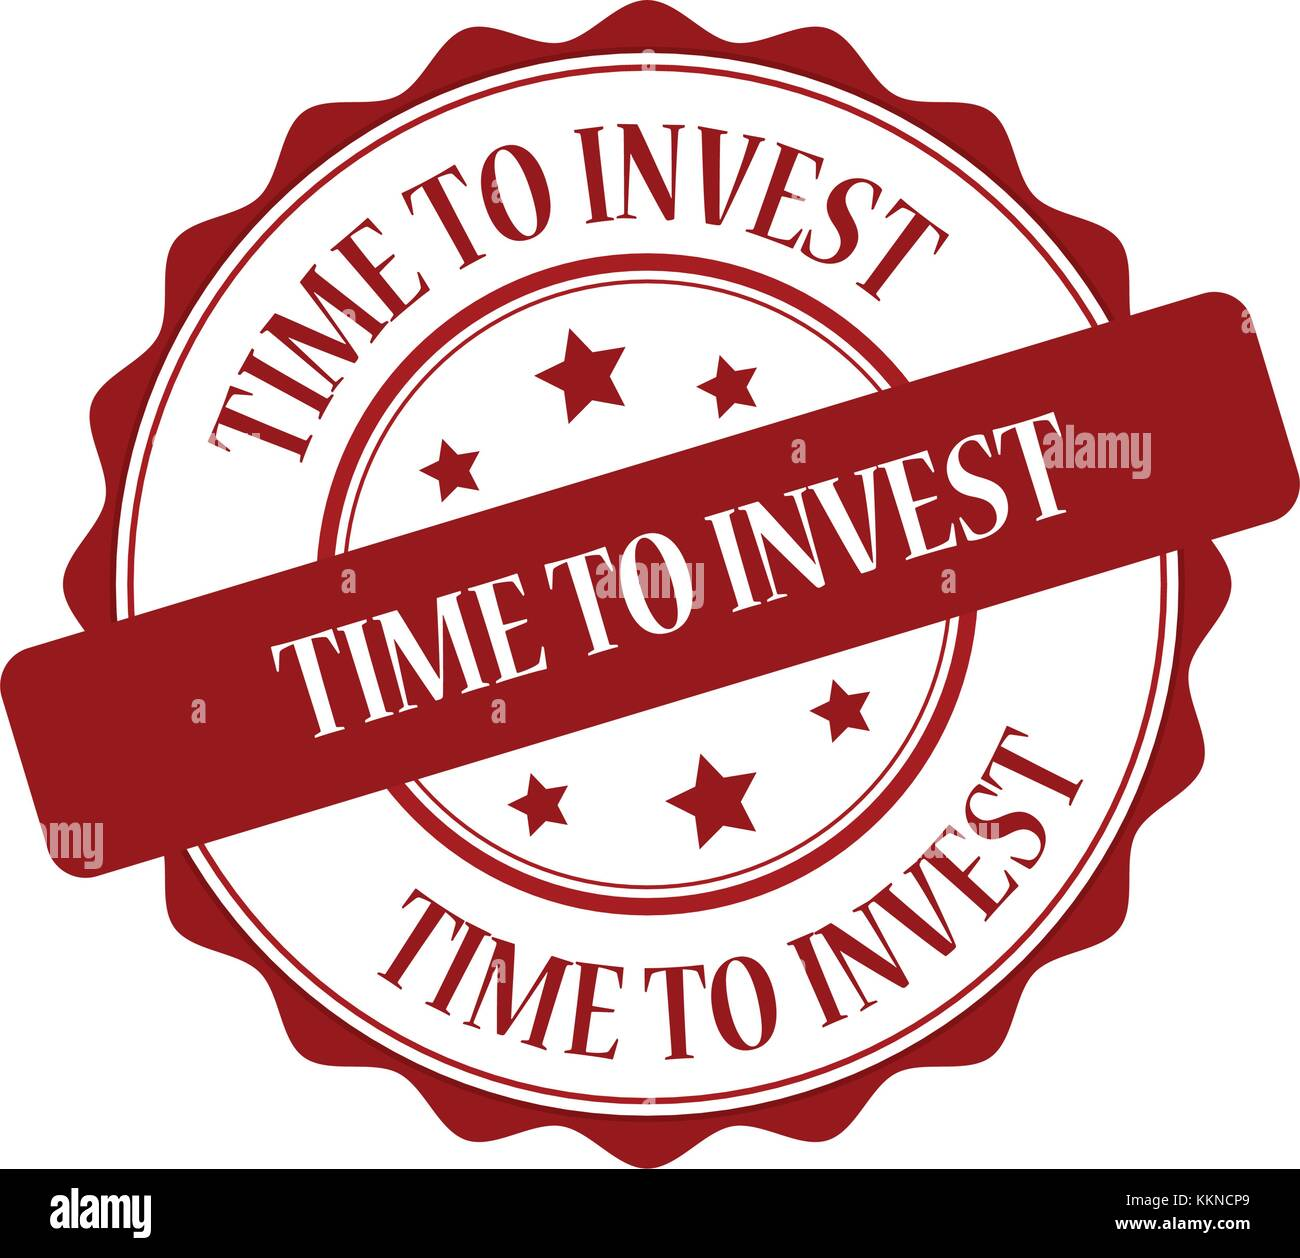 Time to invest stamp illustration - Stock Image